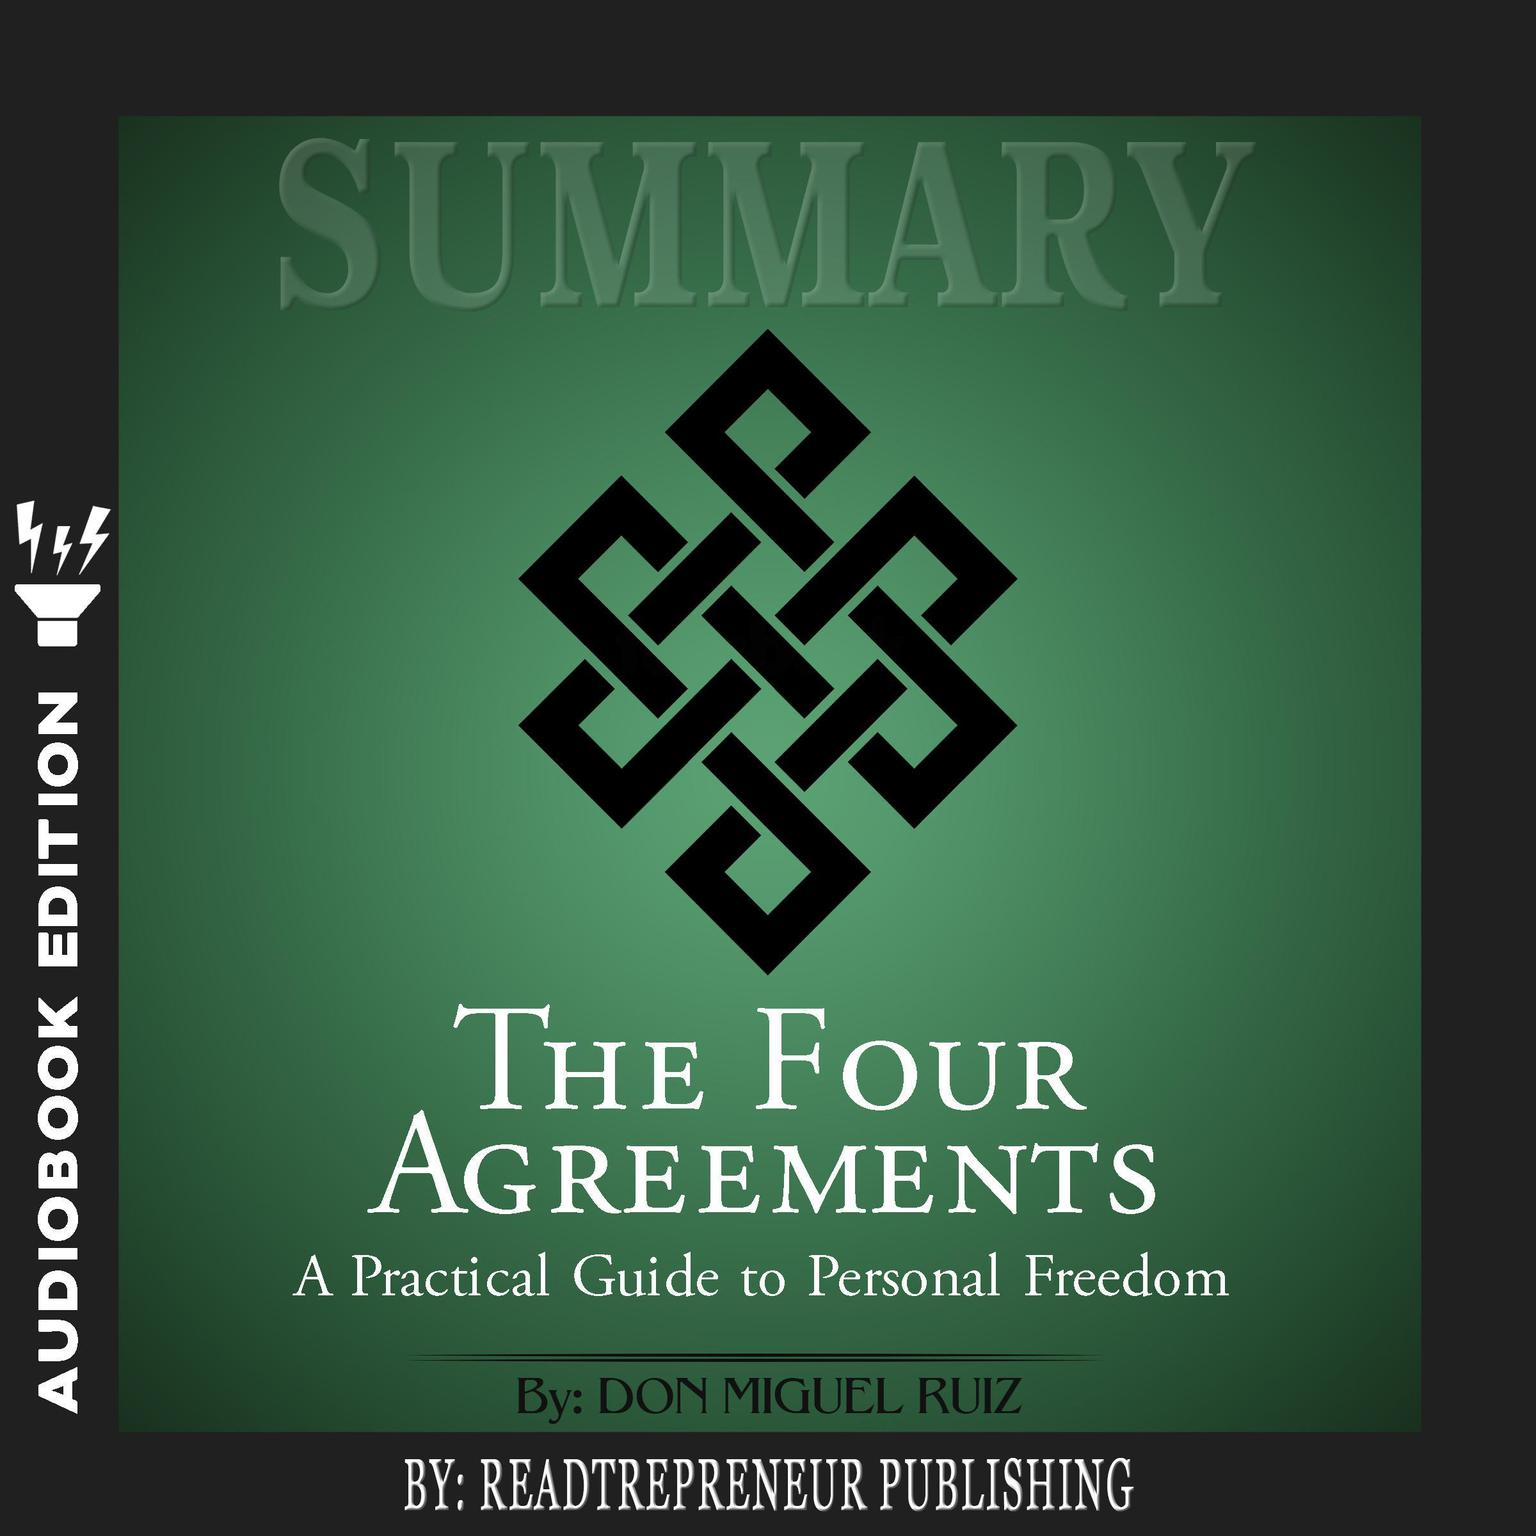 Printable Summary of The Four Agreements: A Practical Guide to Personal Freedom (A Toltec Wisdom Book) by Don Miguel Ruiz Audiobook Cover Art